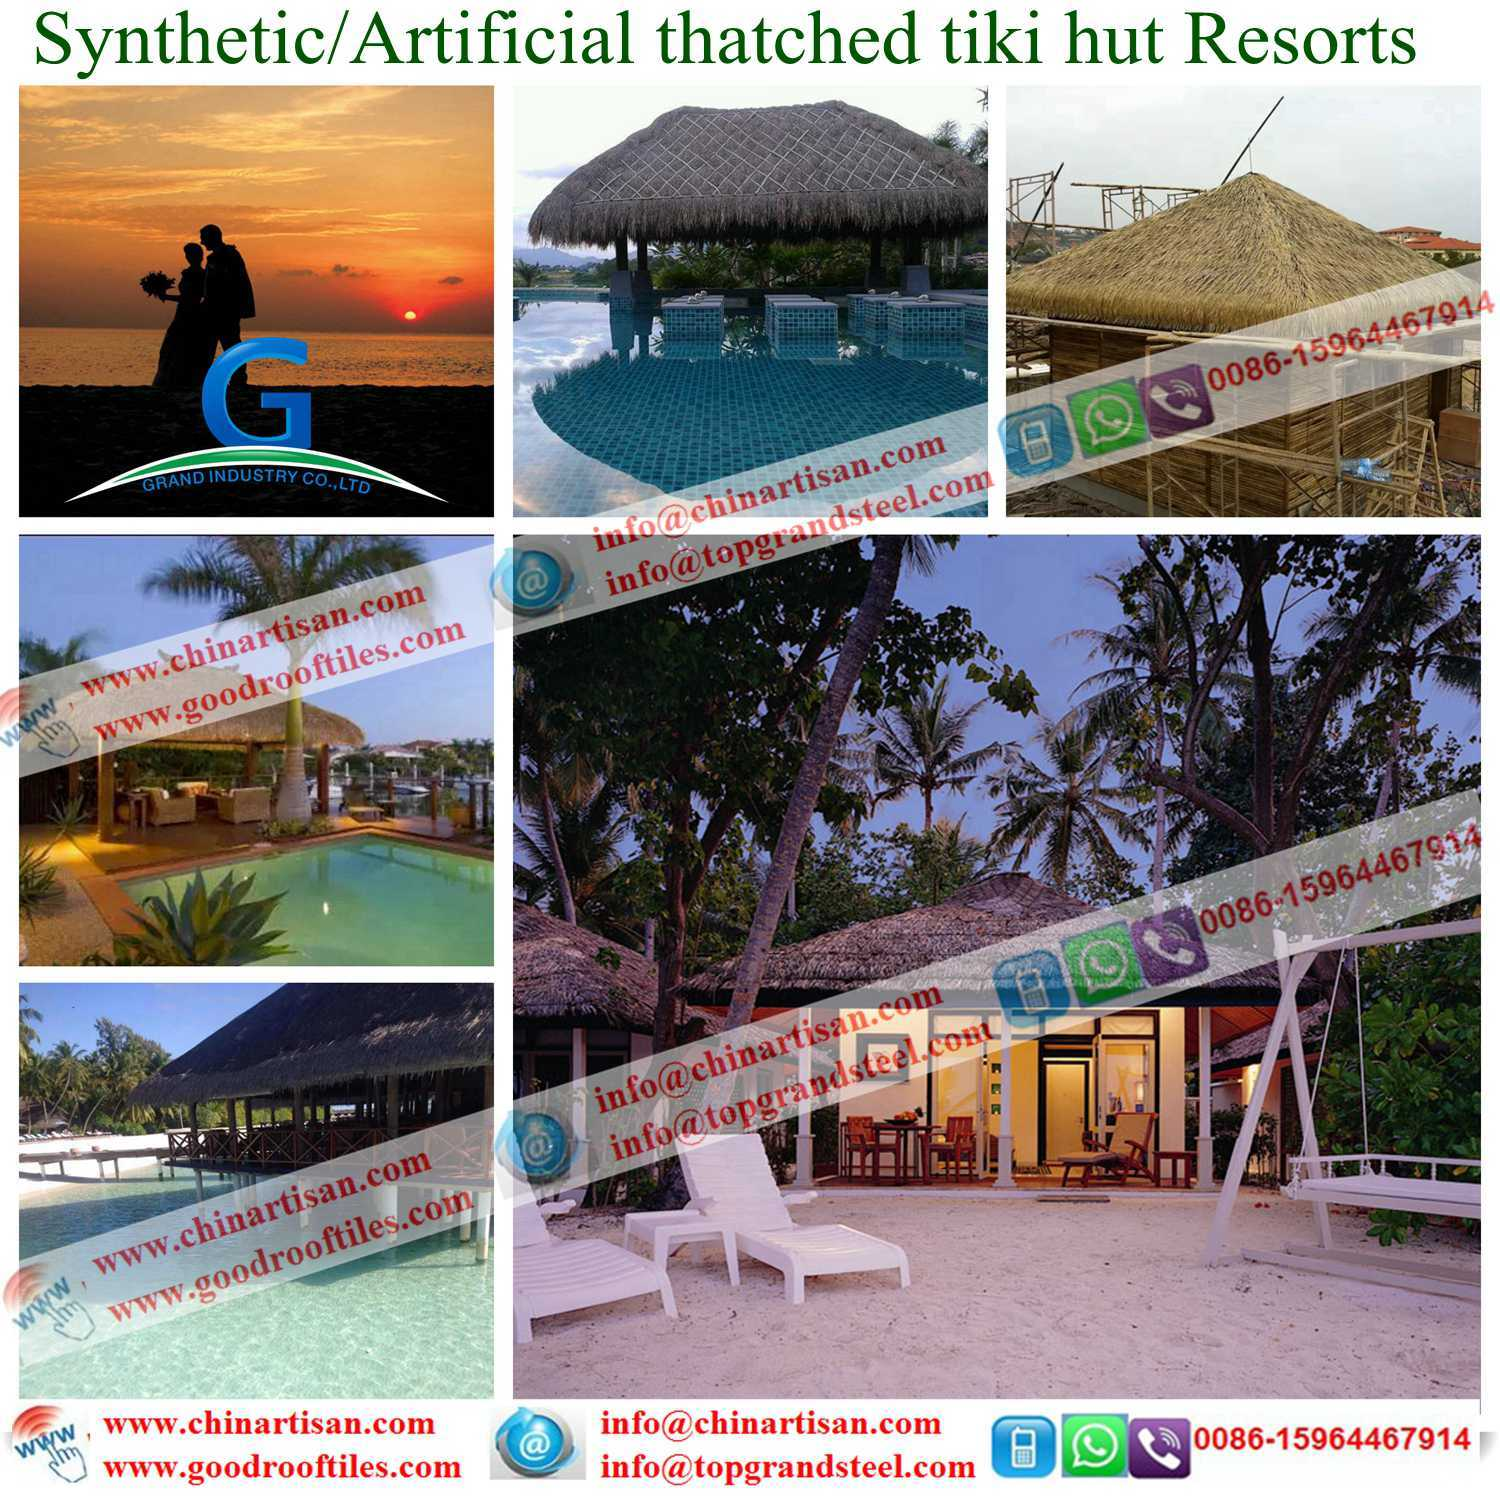 China Maldives Synthetic Thatched Roof Resort Bali Hawaii Artificial Thatch Tiki Bar Hut Cottage